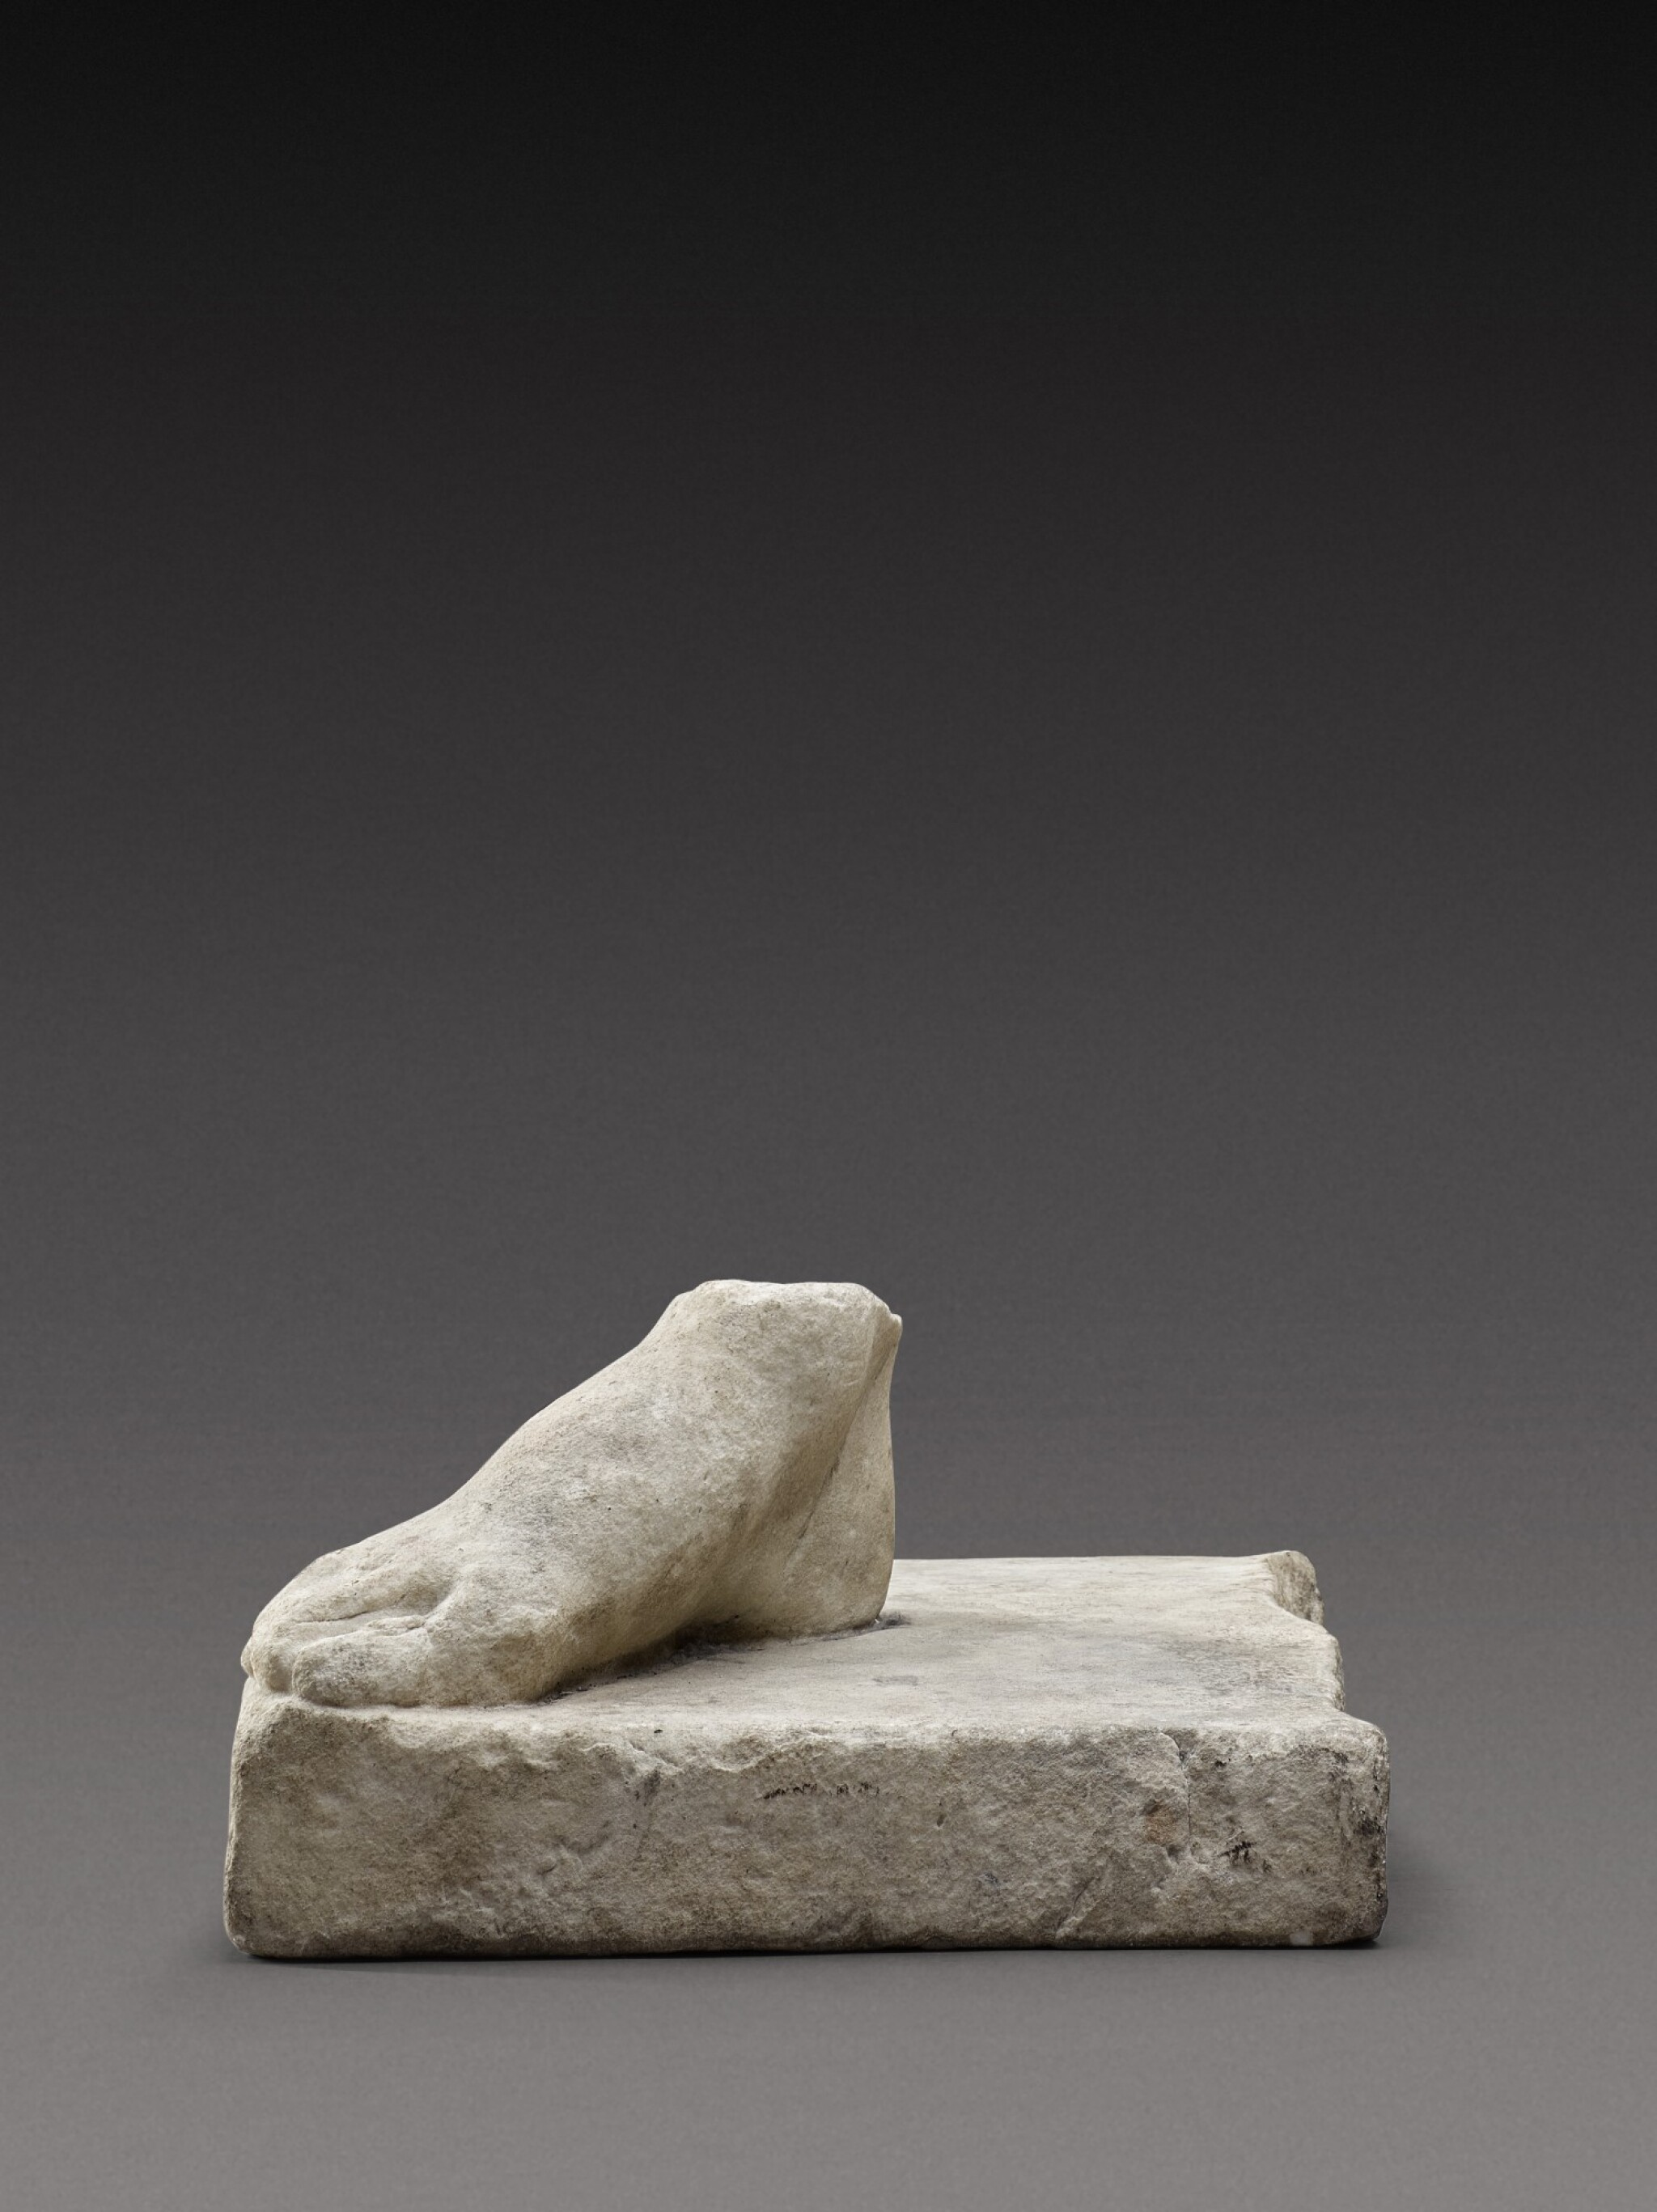 View 1 of Lot 106. A Roman Marble Right Foot, circa 2nd Century A.D..